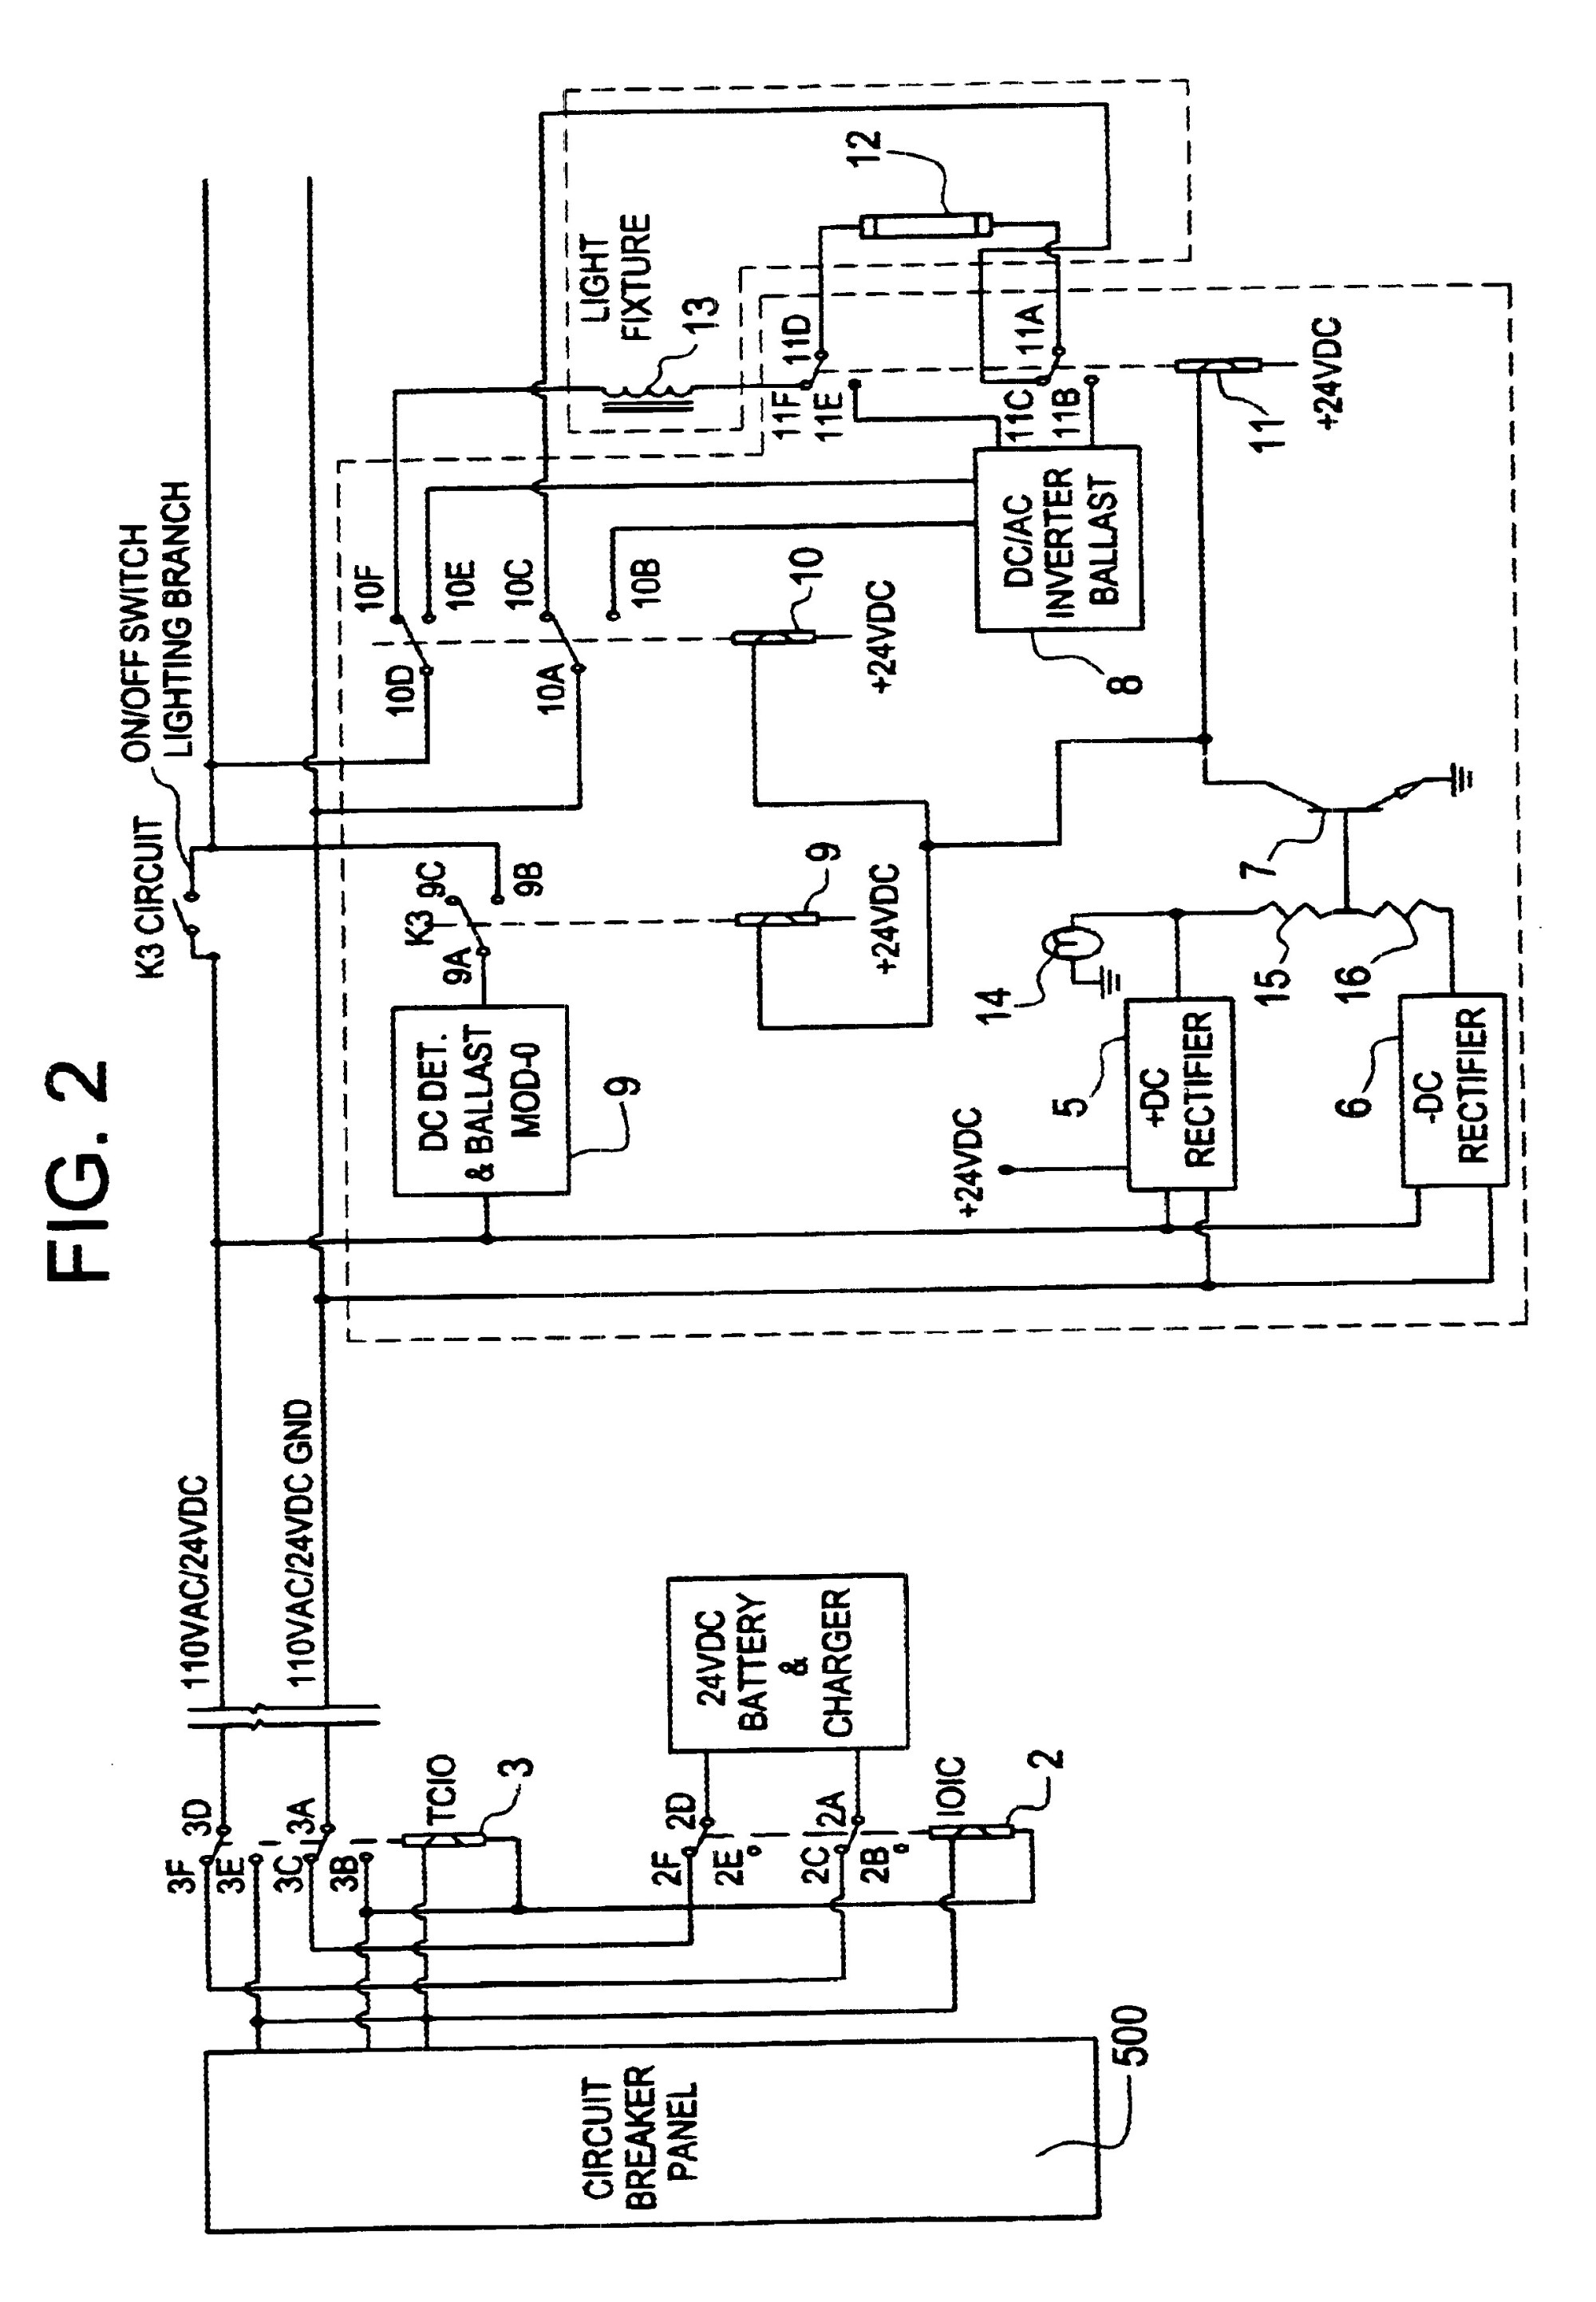 hight resolution of wiring diagram on bodine electric motor wiring doityourself com bodine electric wiring diagram